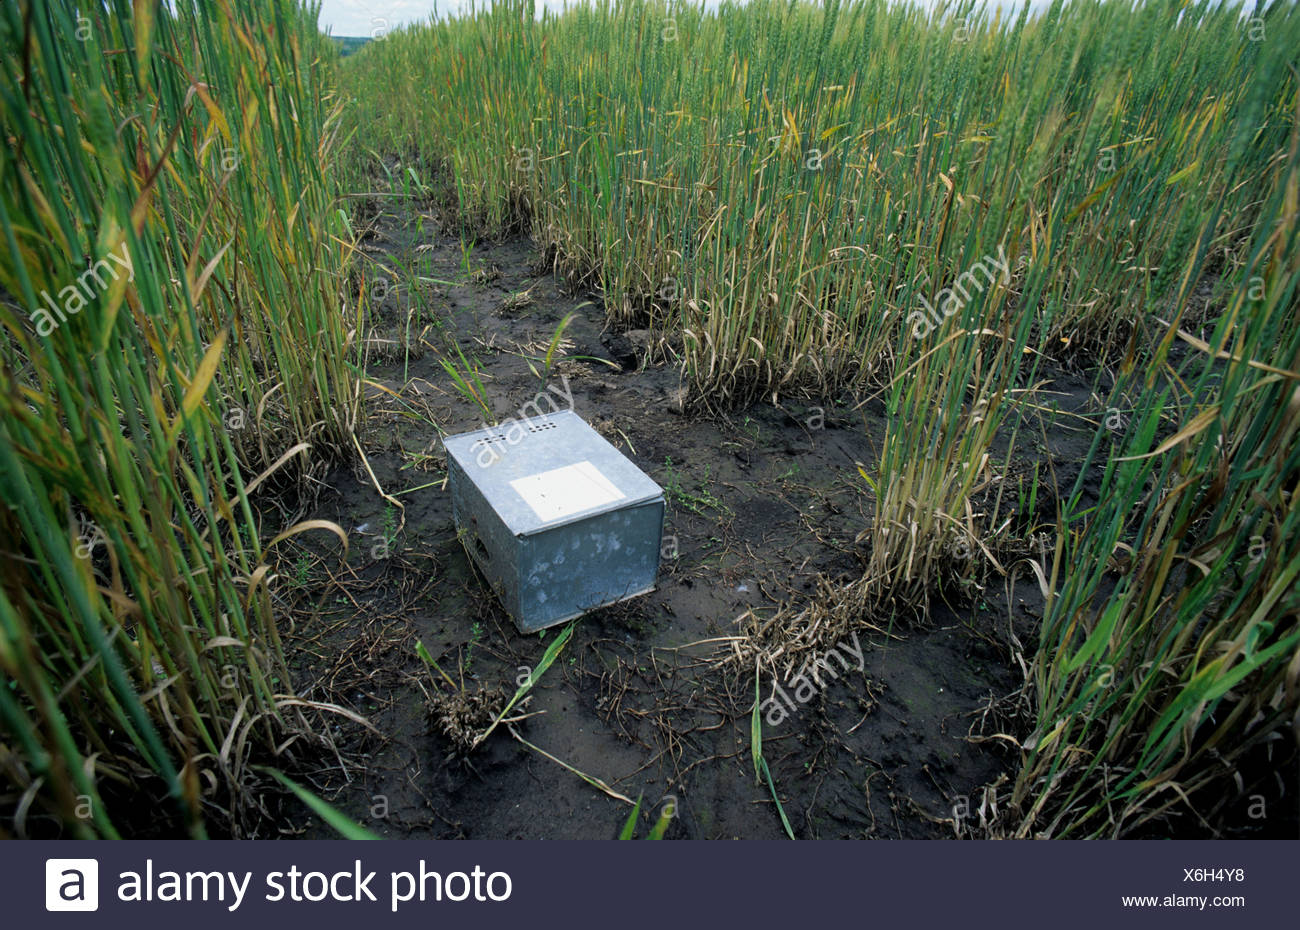 Trap for rats or mice in damaged wheat crop in ear Kansas USA - Stock Image